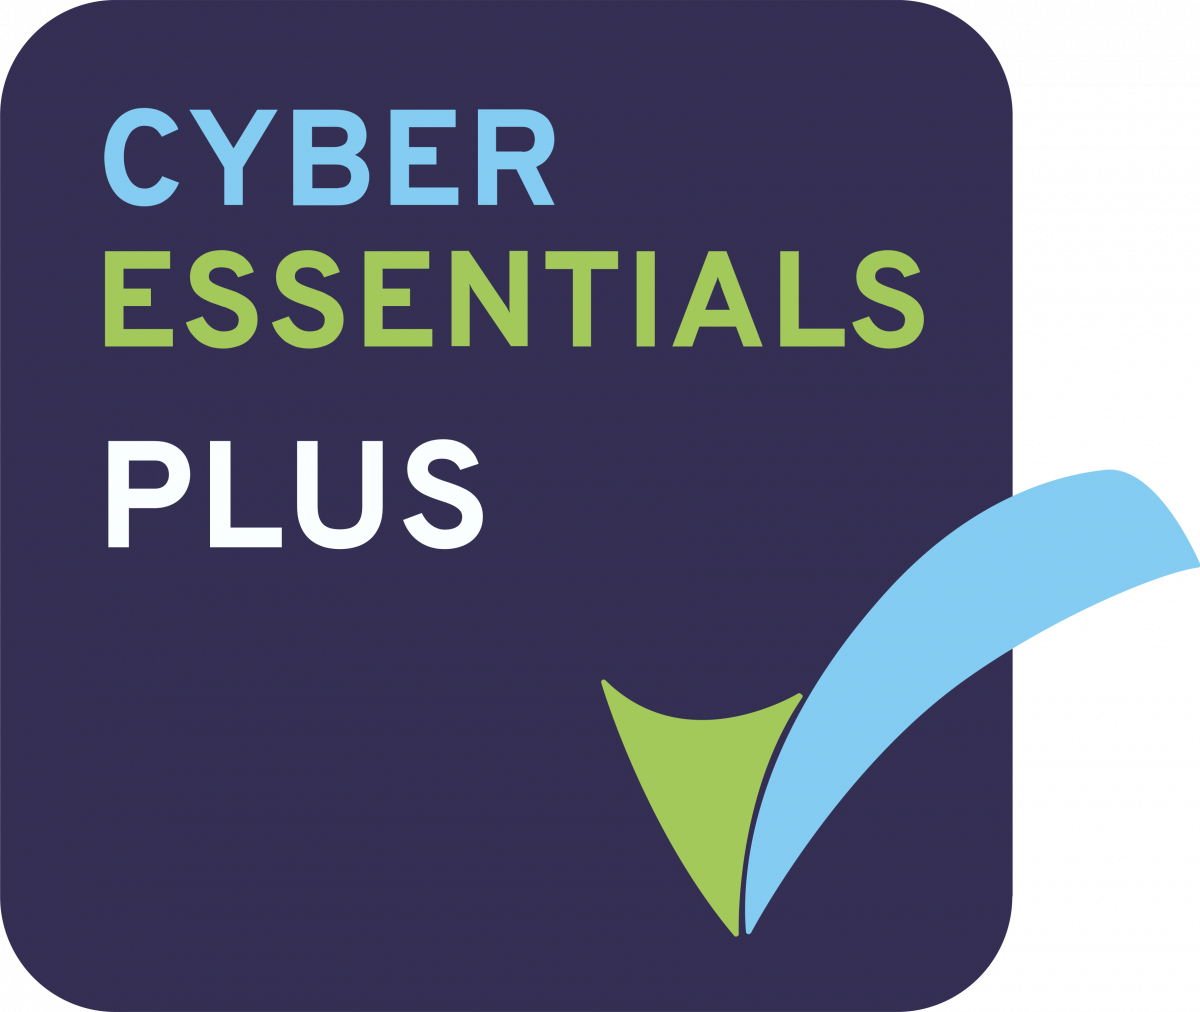 Cyber Essetials Plus logo